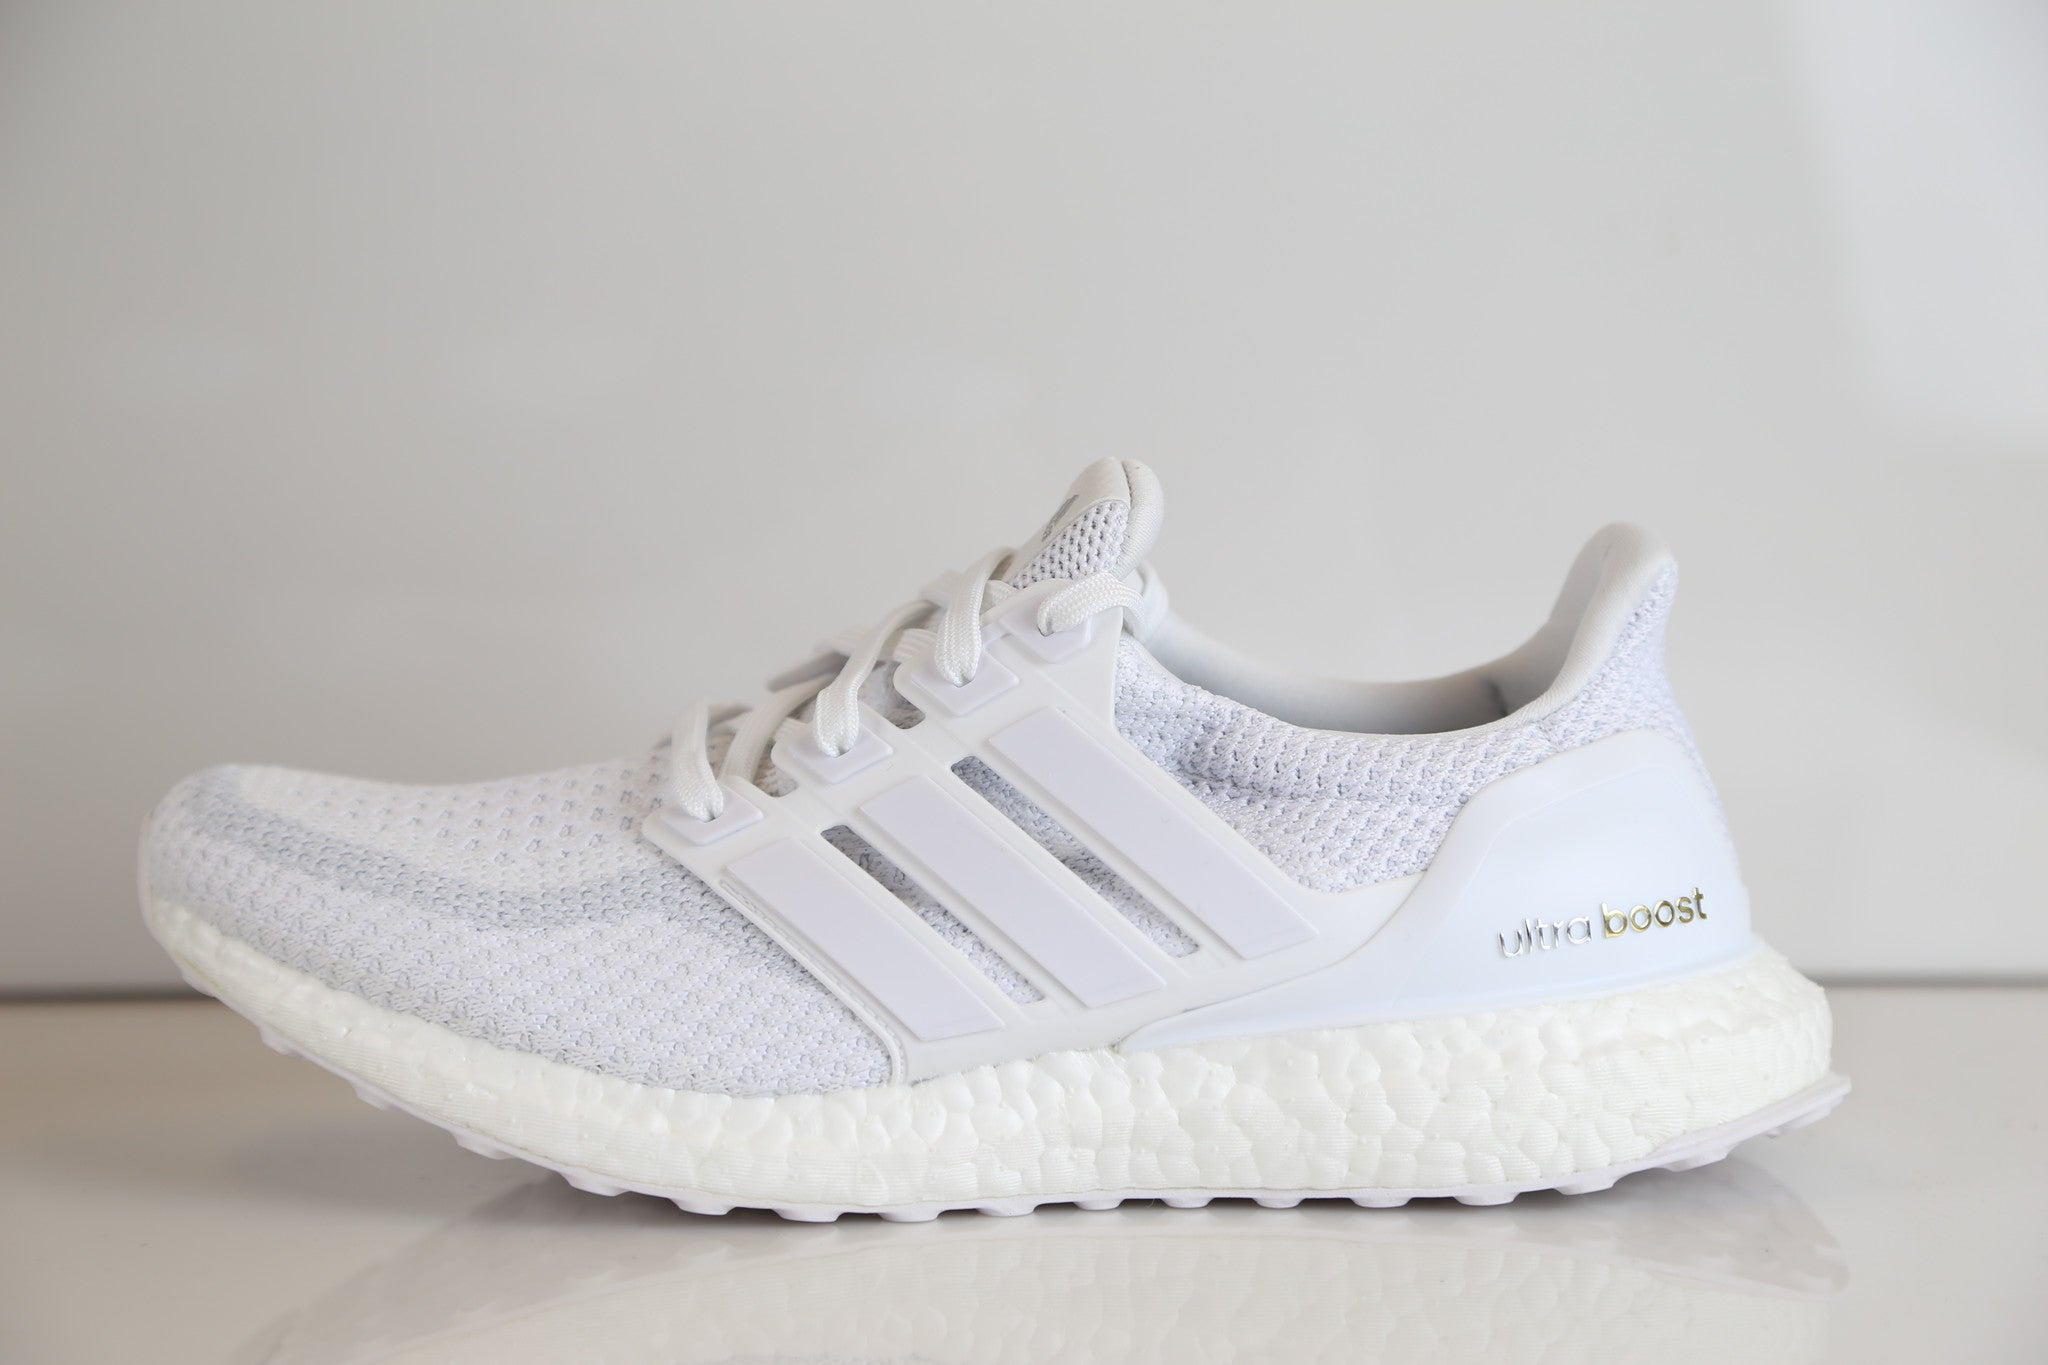 72be1e59ed109 Adidas Ultra Boost M 2.0 Triple White PK AQ5929